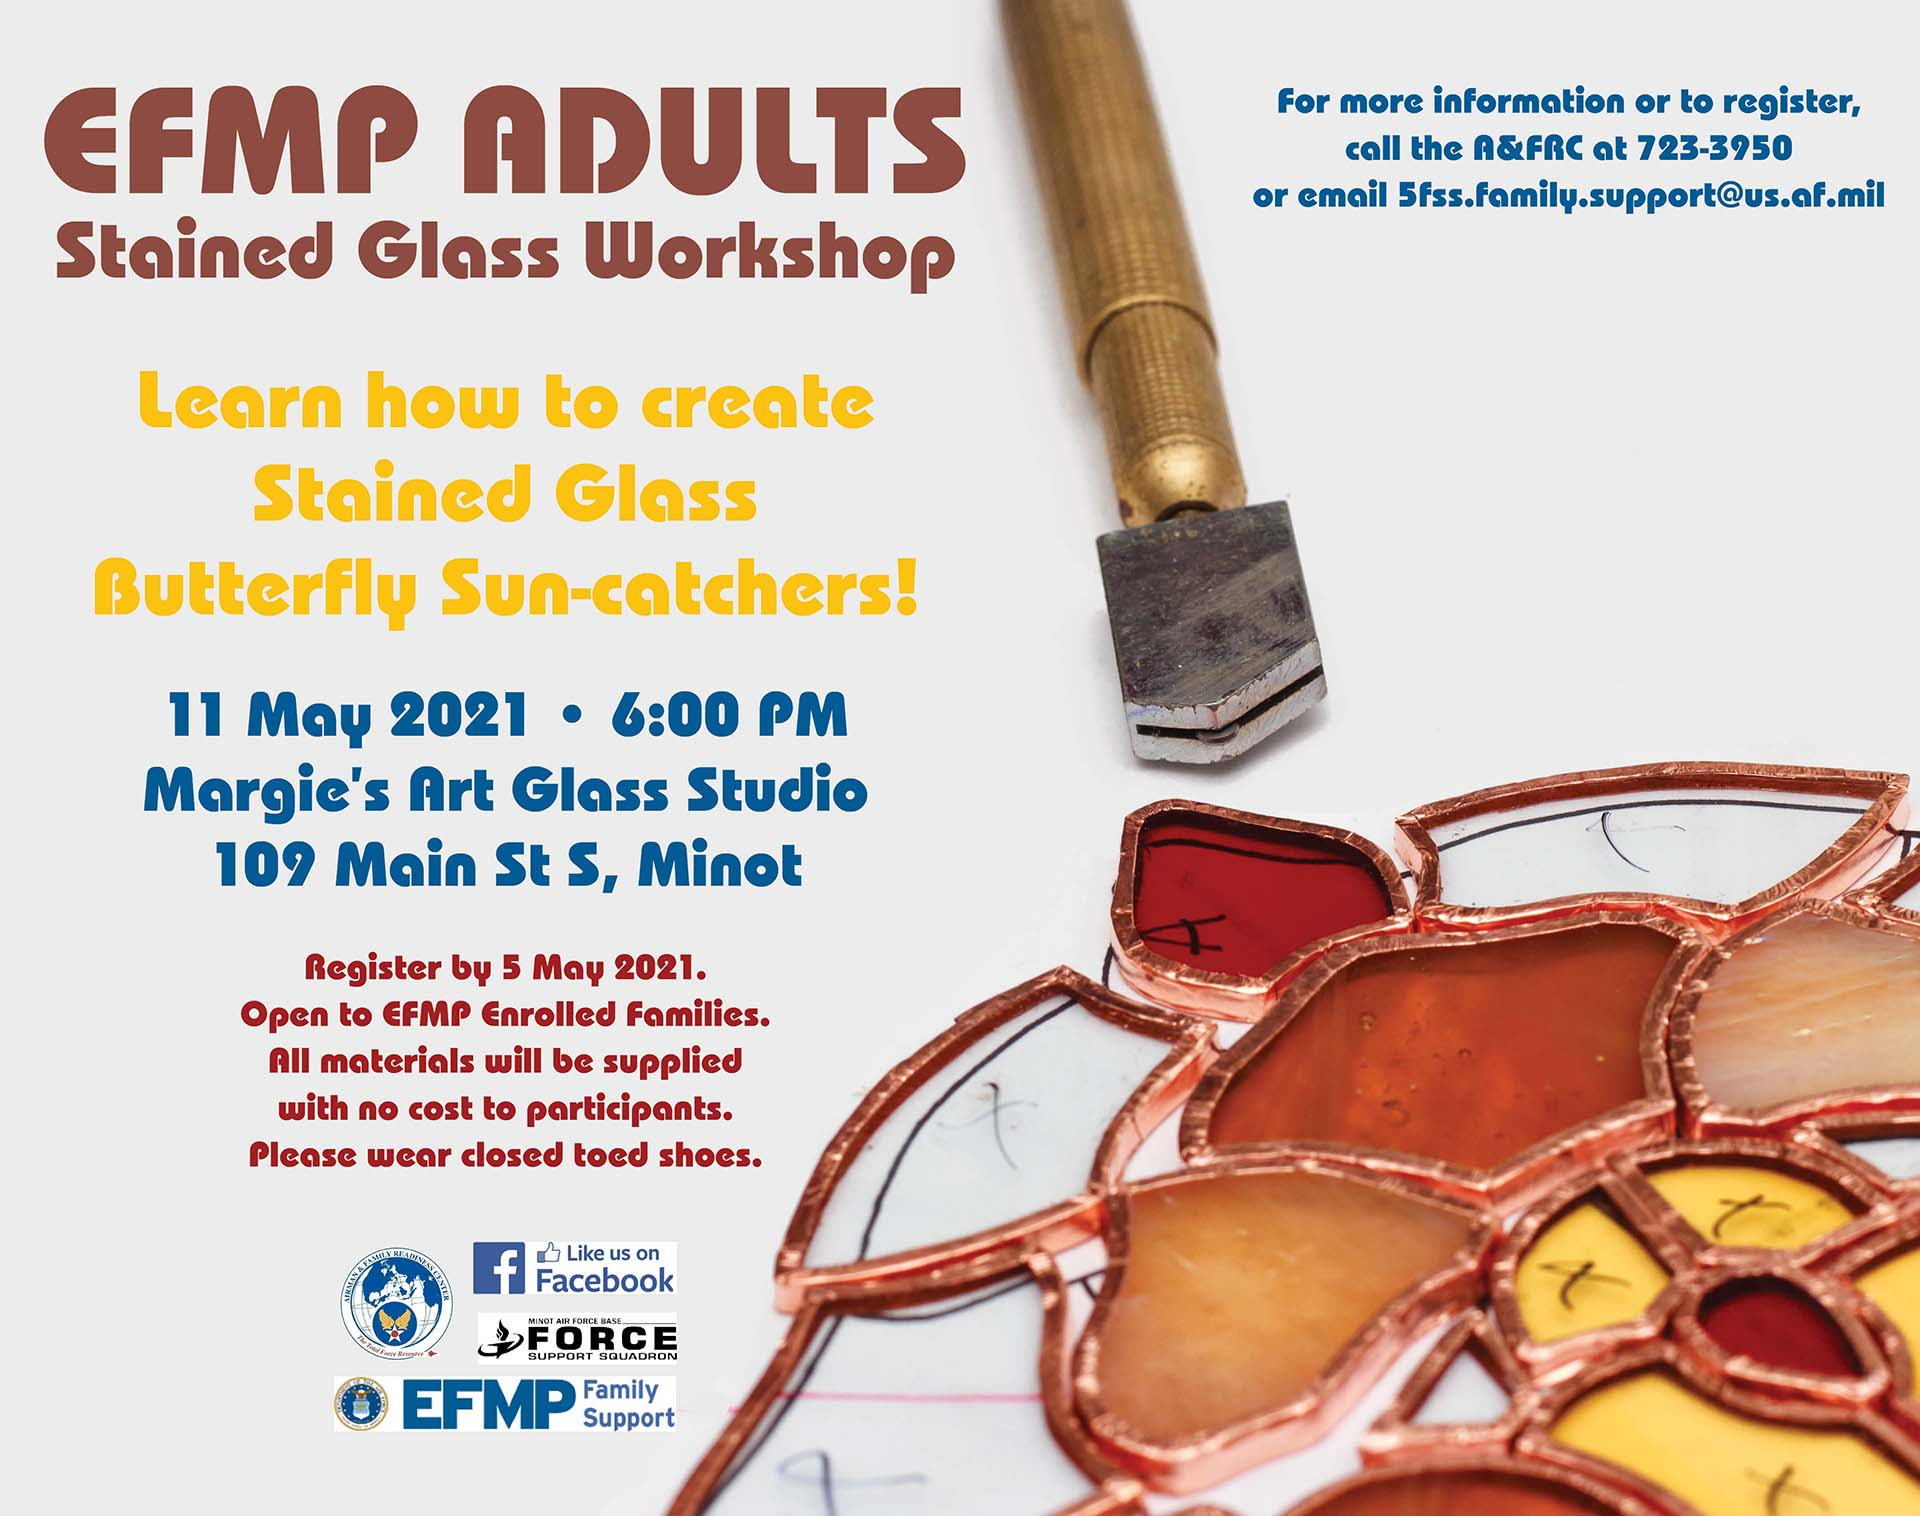 EFMP Adults - Stained Glass Workshop